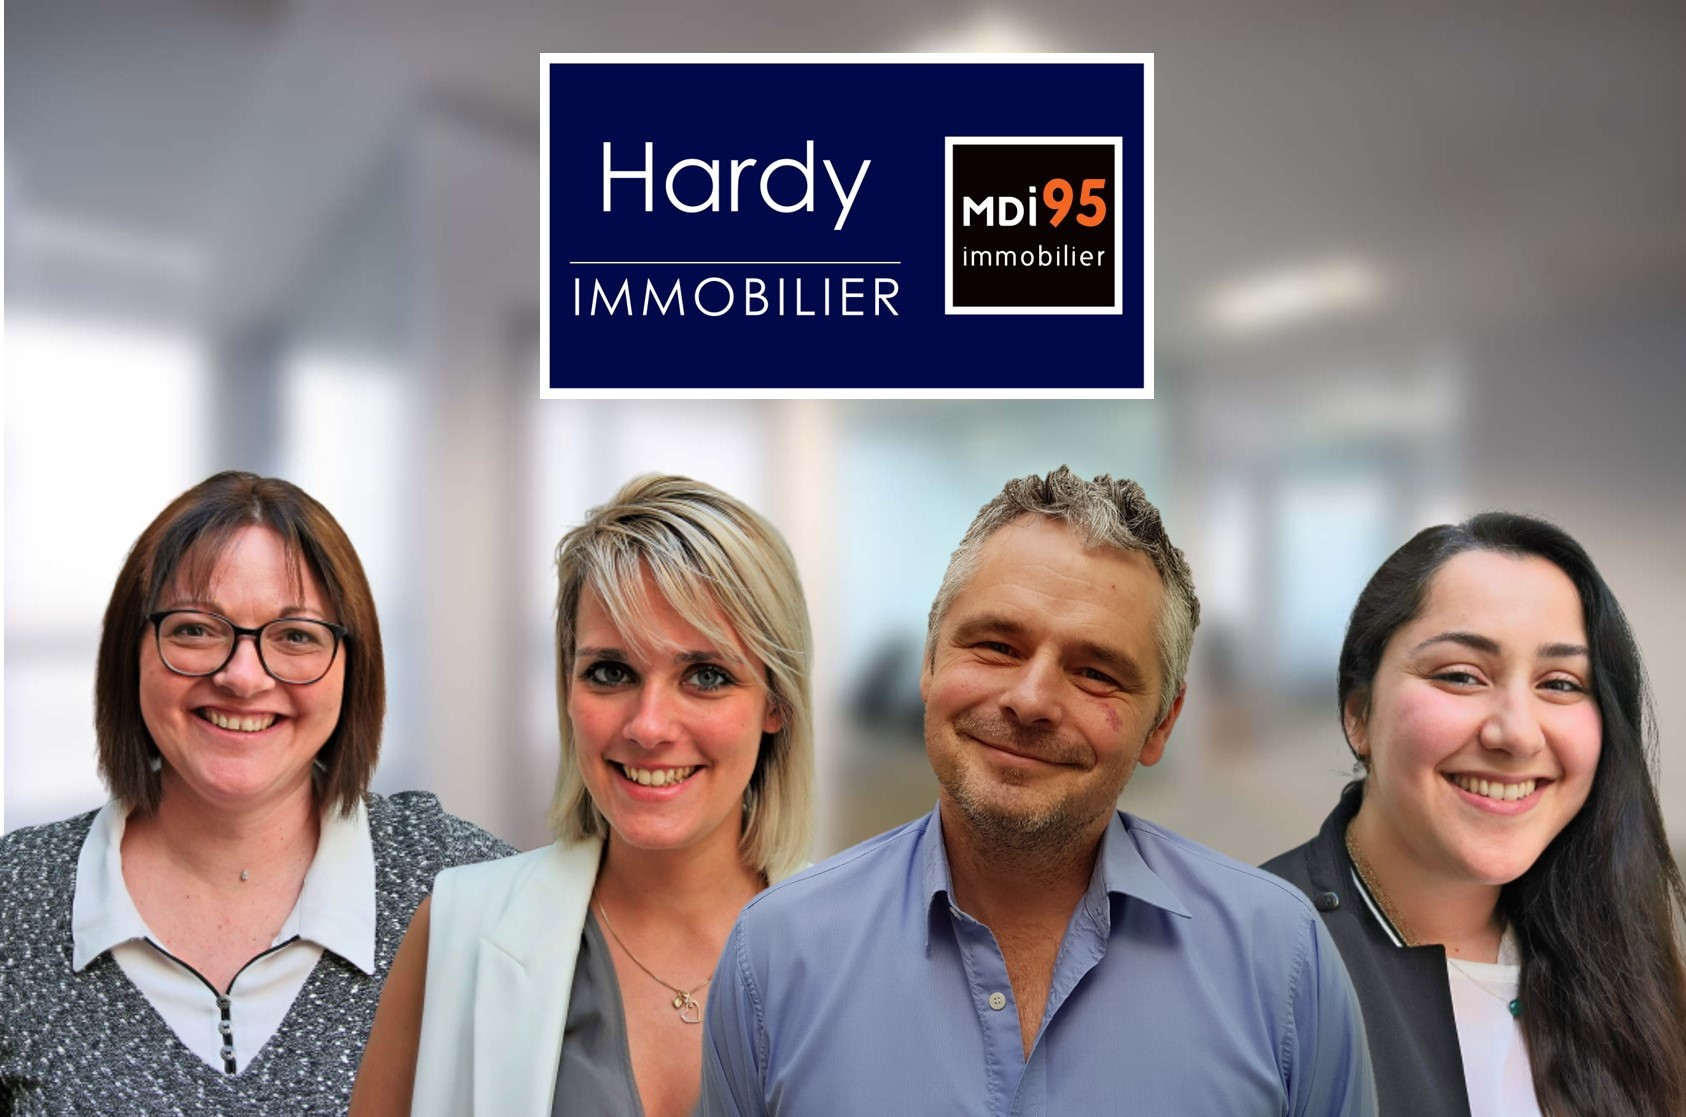 Hardy IMMOBILIER